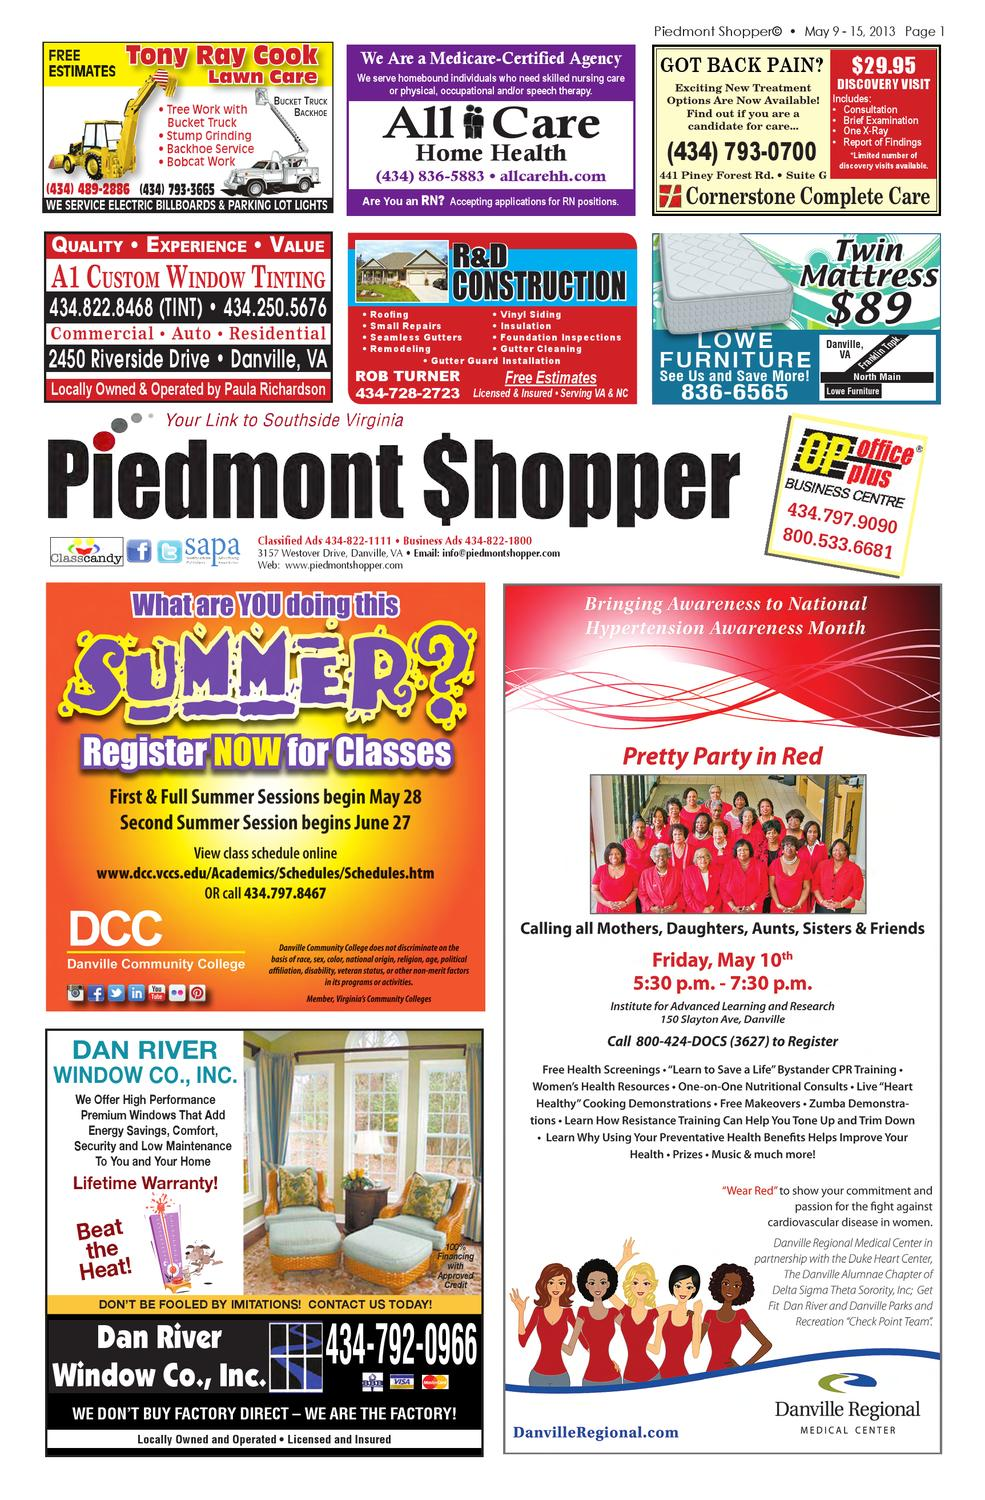 04f2455a1ce7 The Piedmont Shopper 5.9.13 by piedmont shopper - issuu